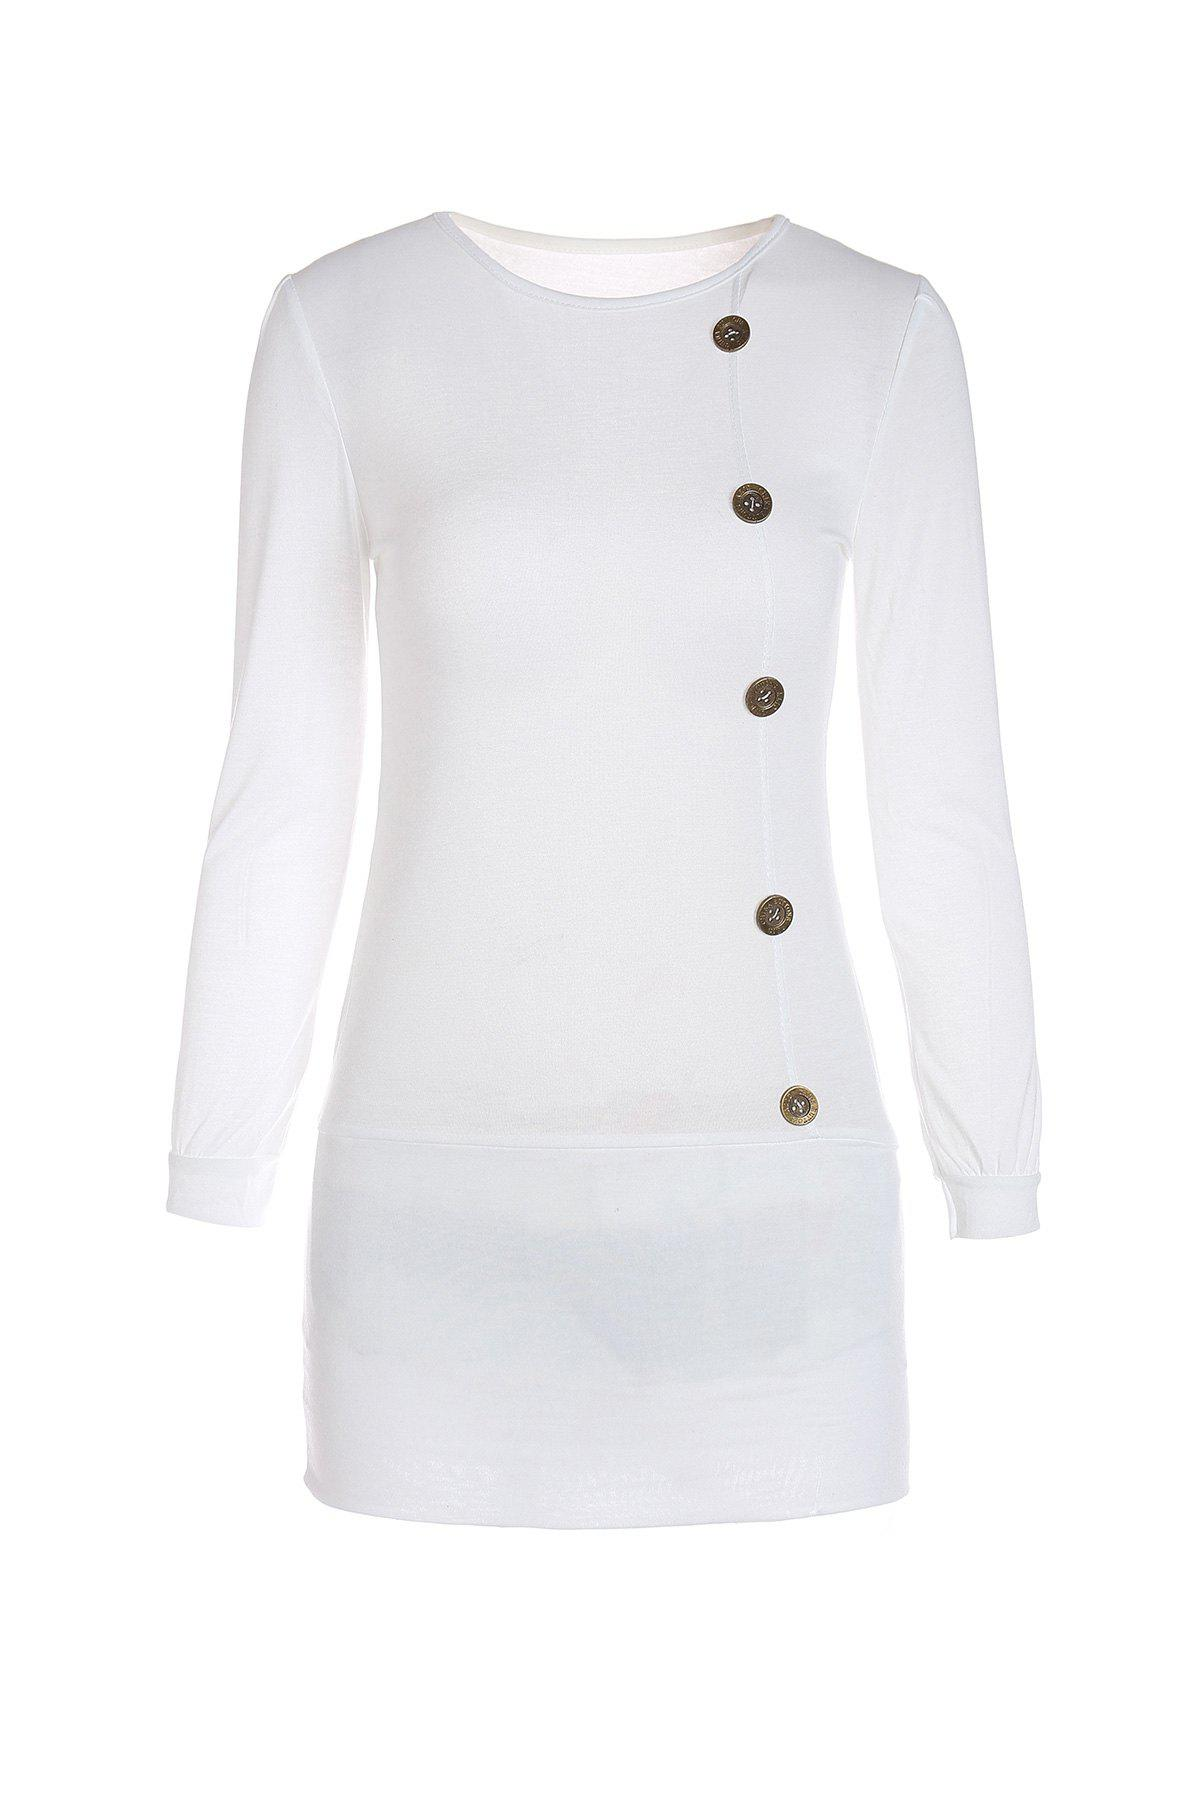 Stylish Scoop Neck Long Sleeve Single-Breasted Solid Color Women's Dress - WHITE M